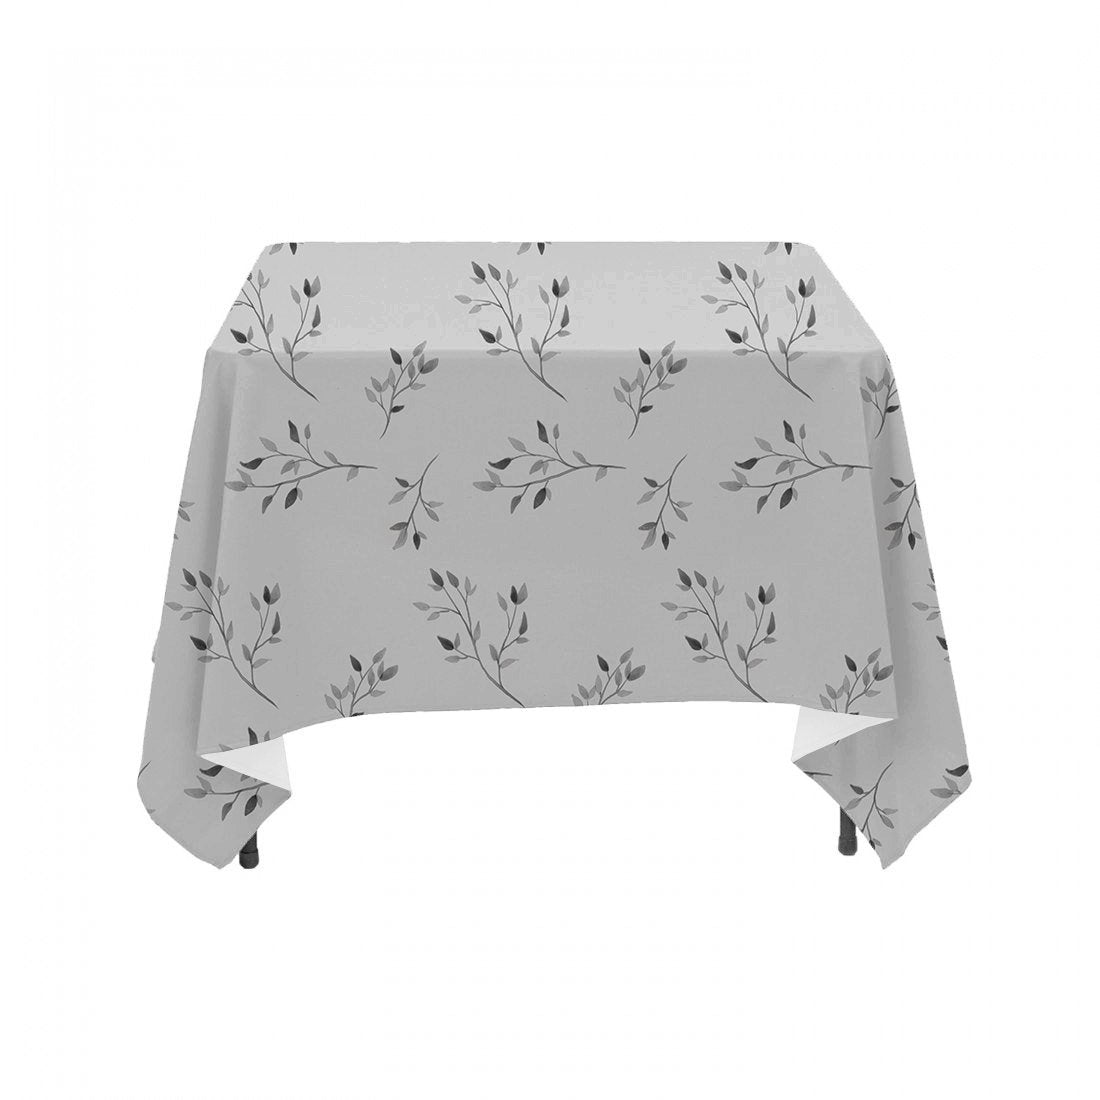 Neutral Grayscale Watercolor Floral Branches- Linen Table Cloth